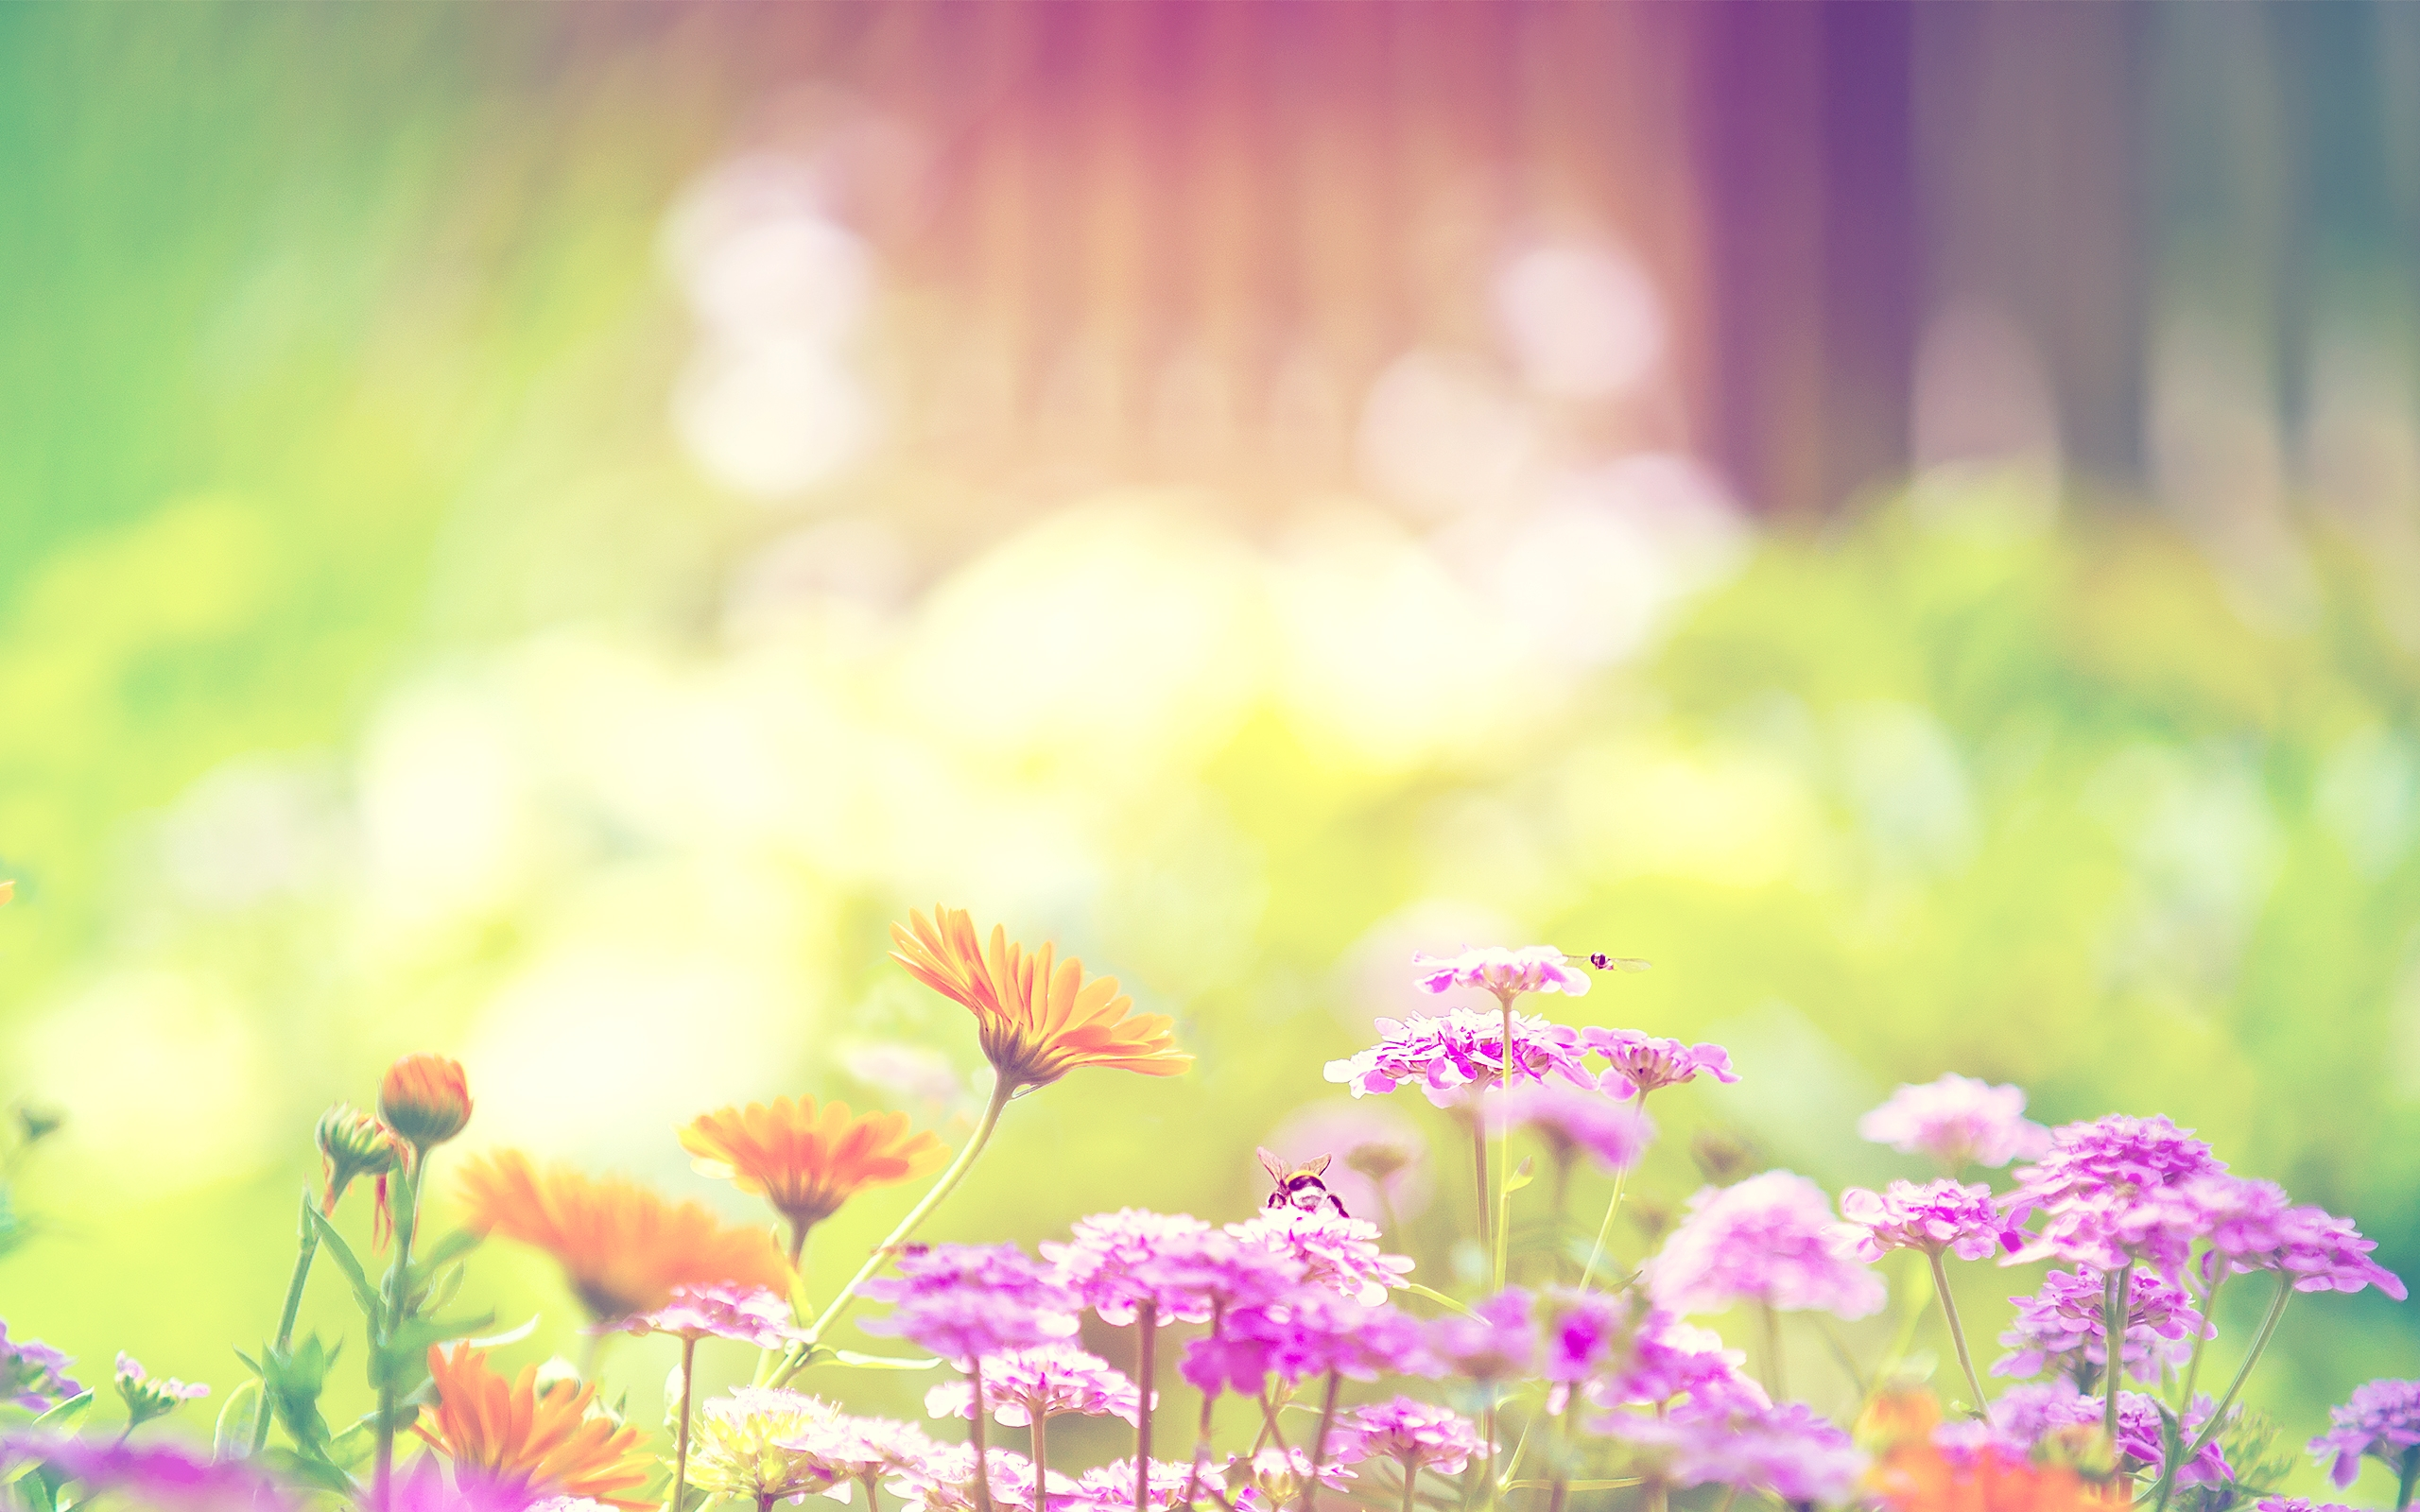 Spring flowers background wallpaper 2560x1600 83366 spring flowers background mightylinksfo